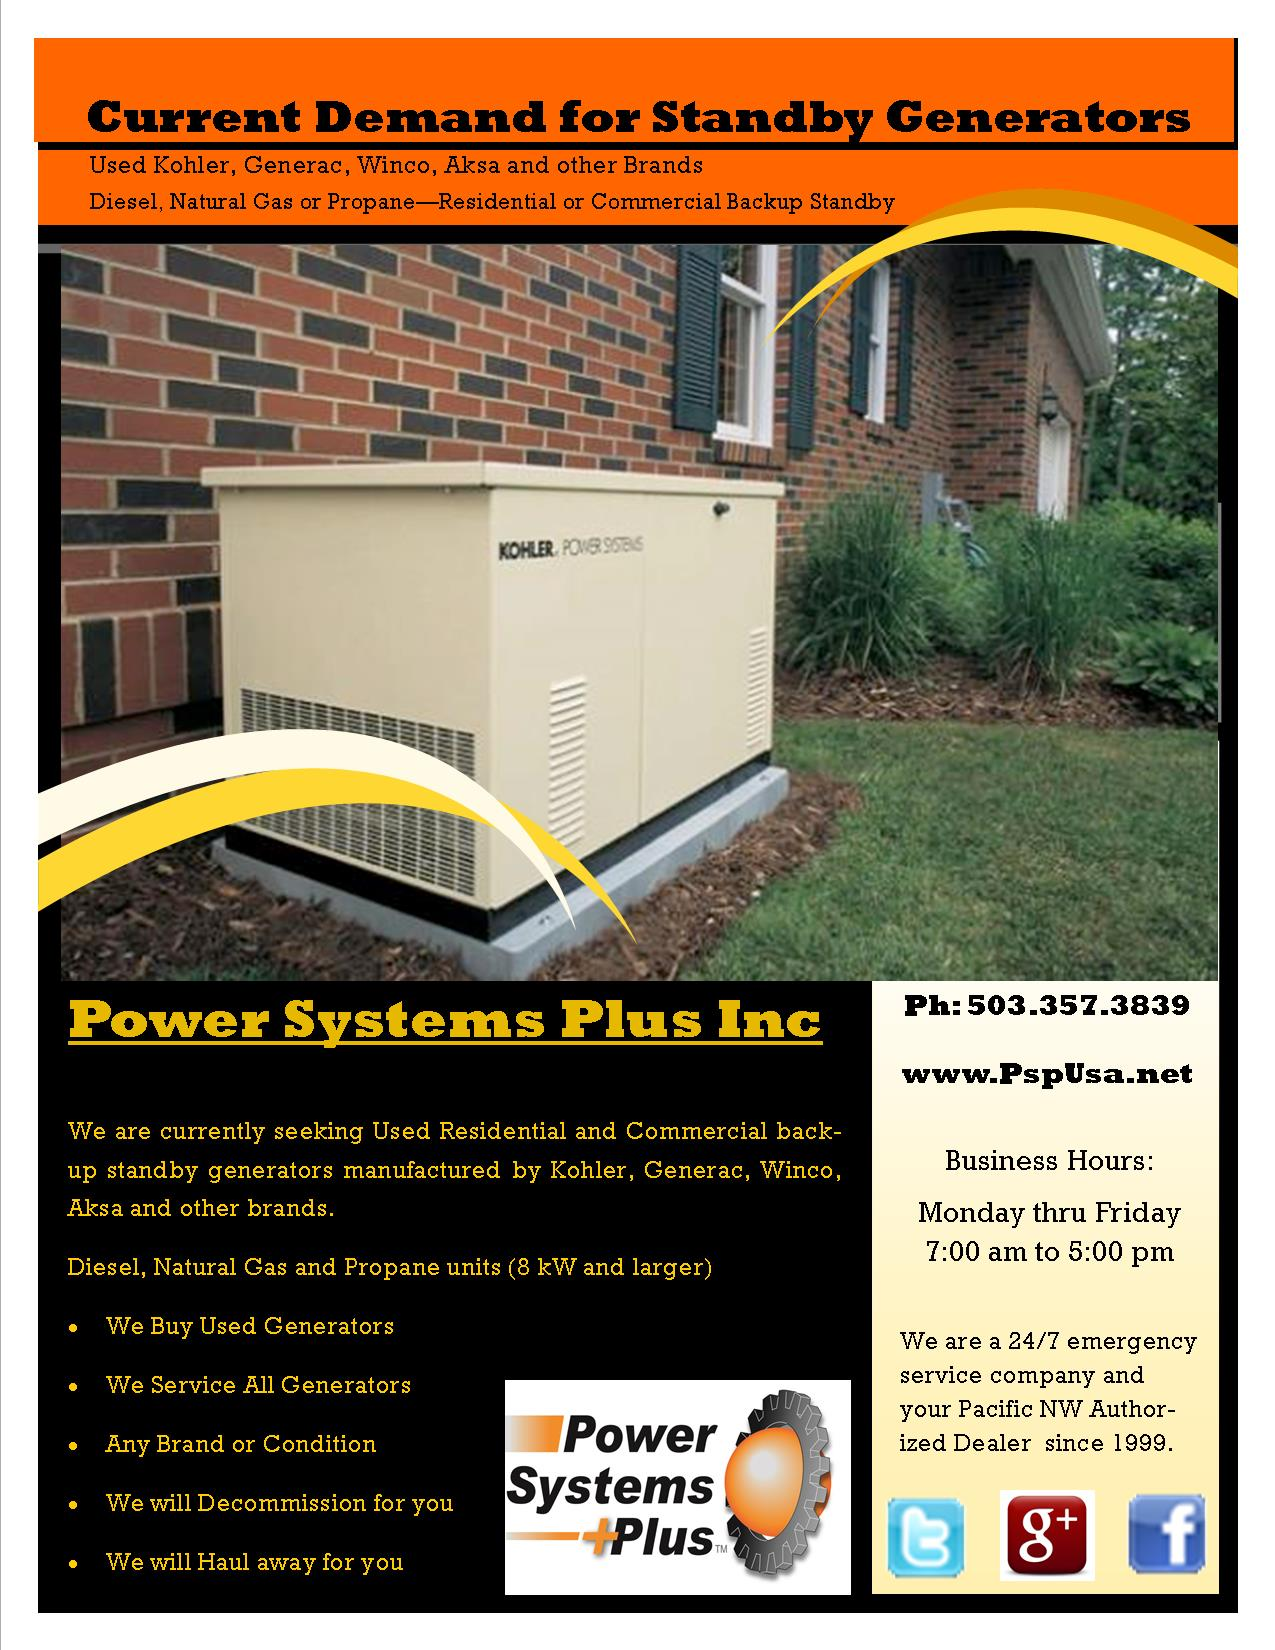 We Have Demand For Used Standby Generators Power Systems Plus